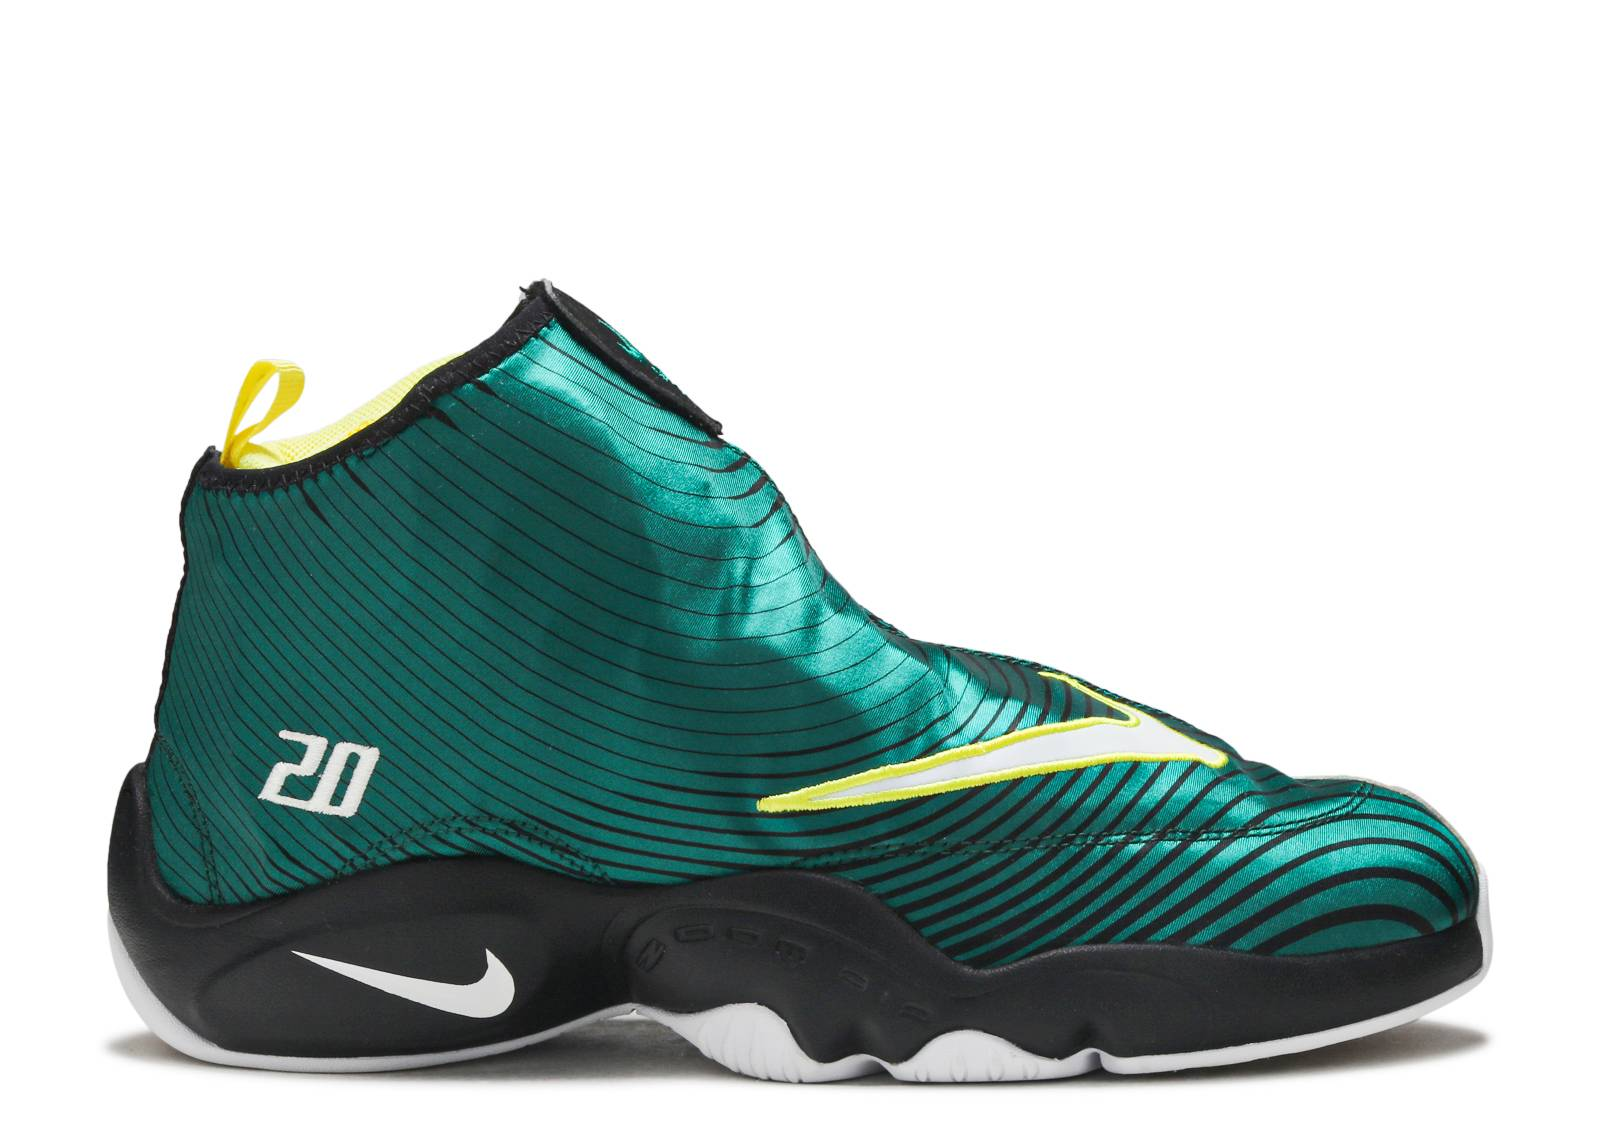 Cheap Nike Air Zoom Flight x Sole Collector - The Glove #630773-300